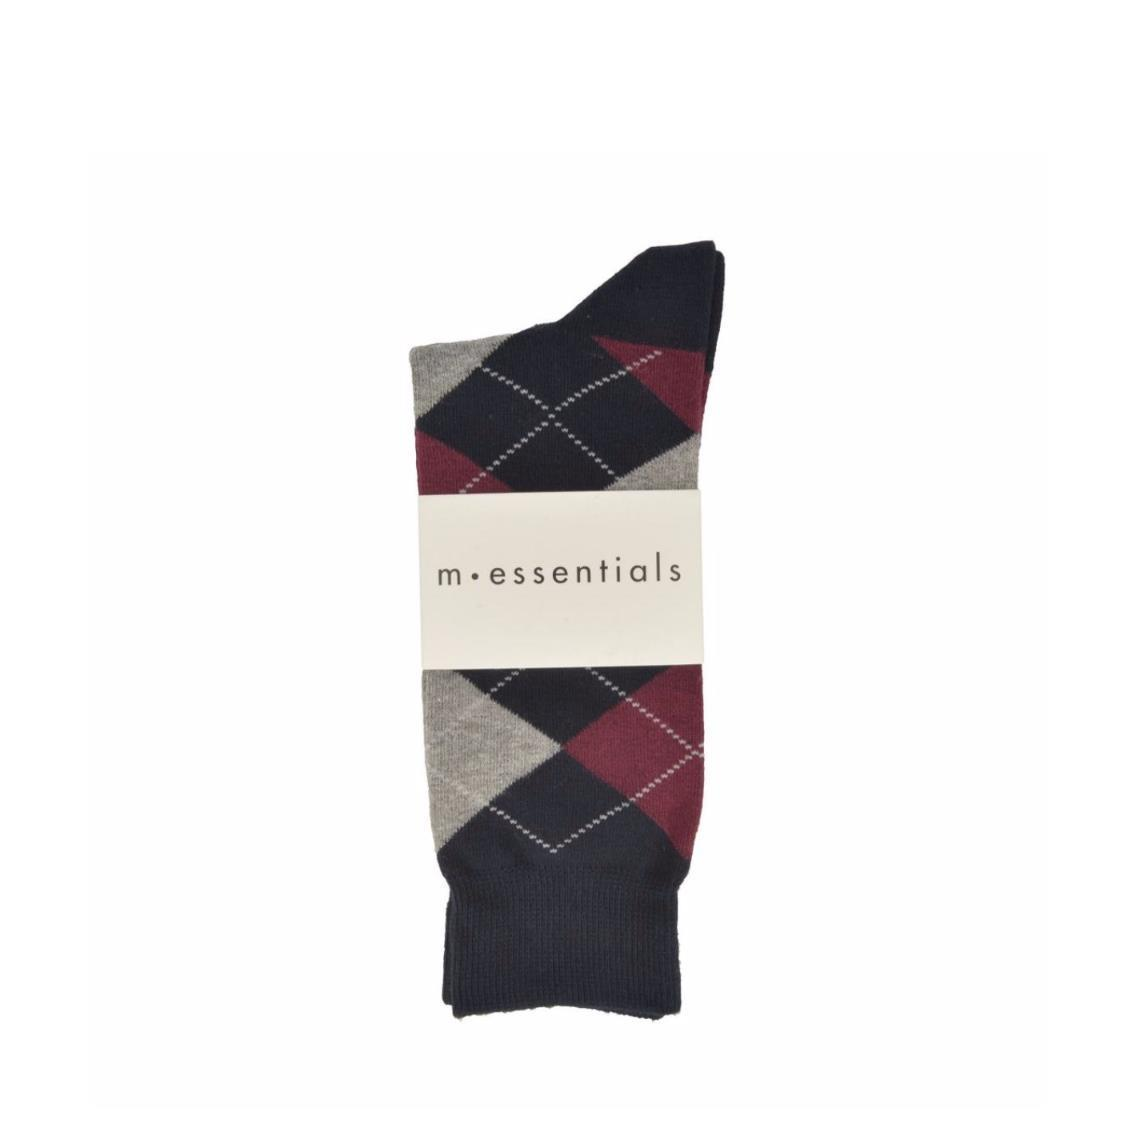 Mens Argyle Pattern Socks In Grey and Maroon